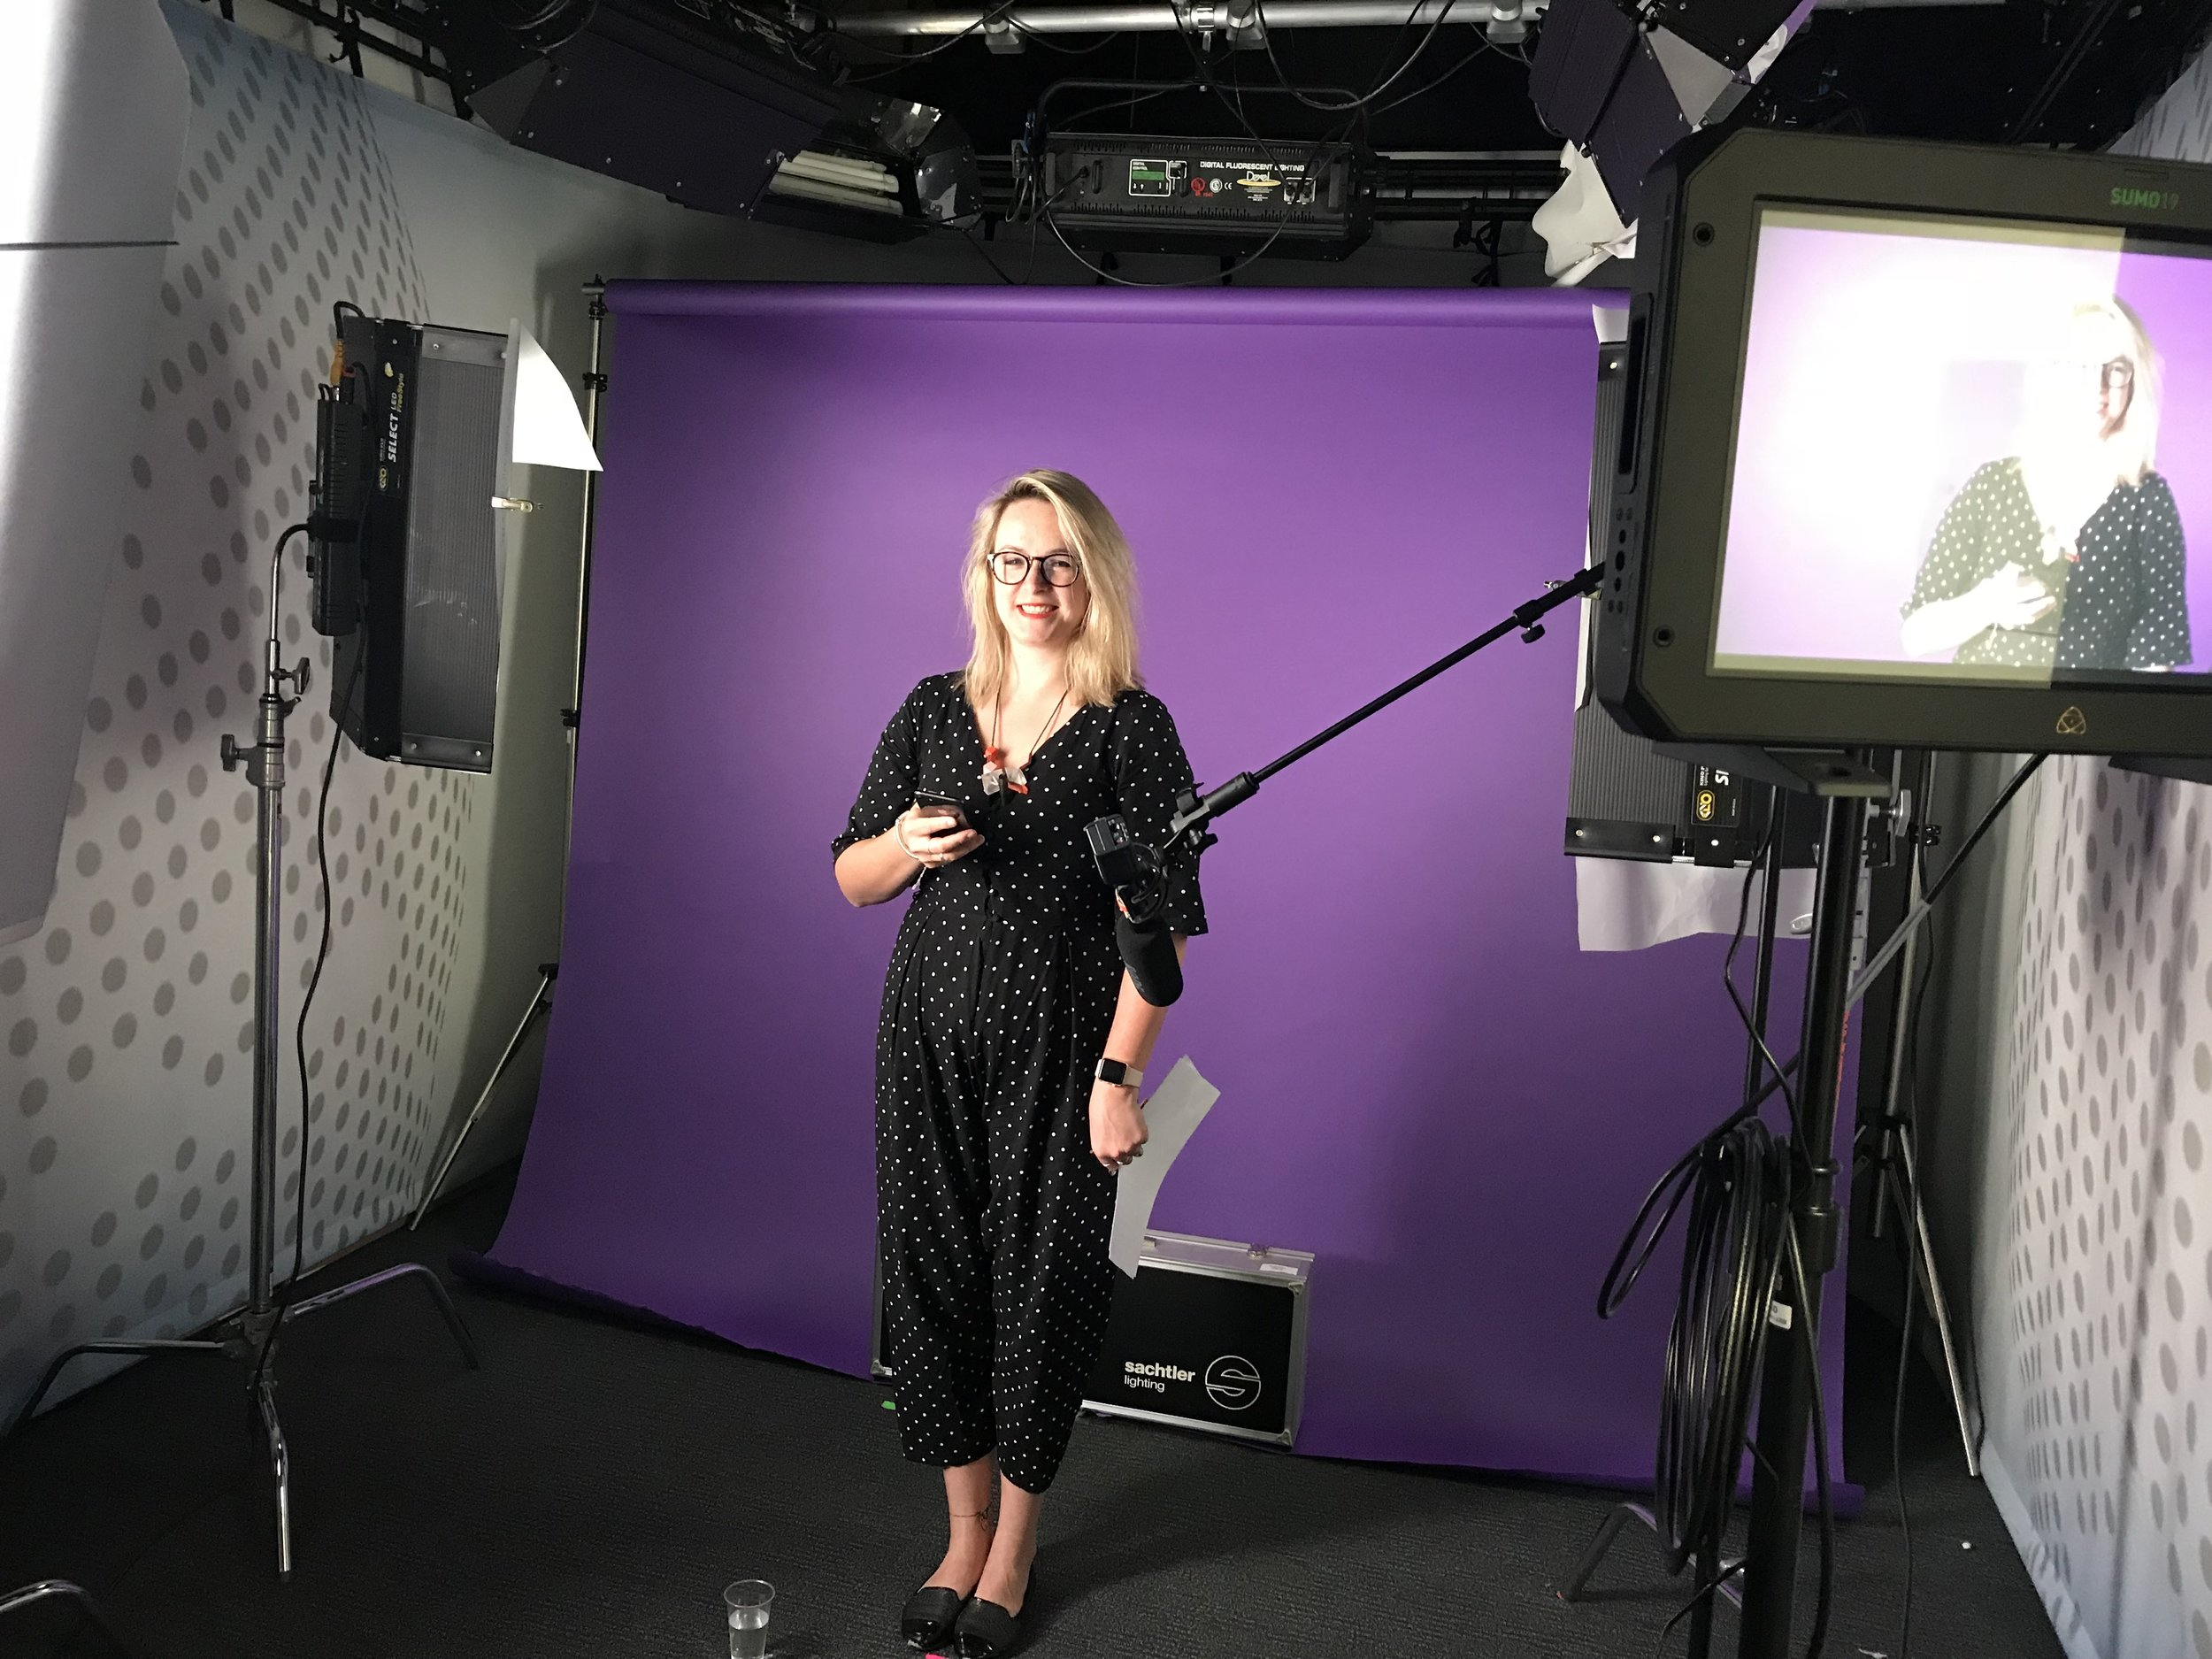 Behind the scenes: Kat Sutton in the filming studio for our launch video below